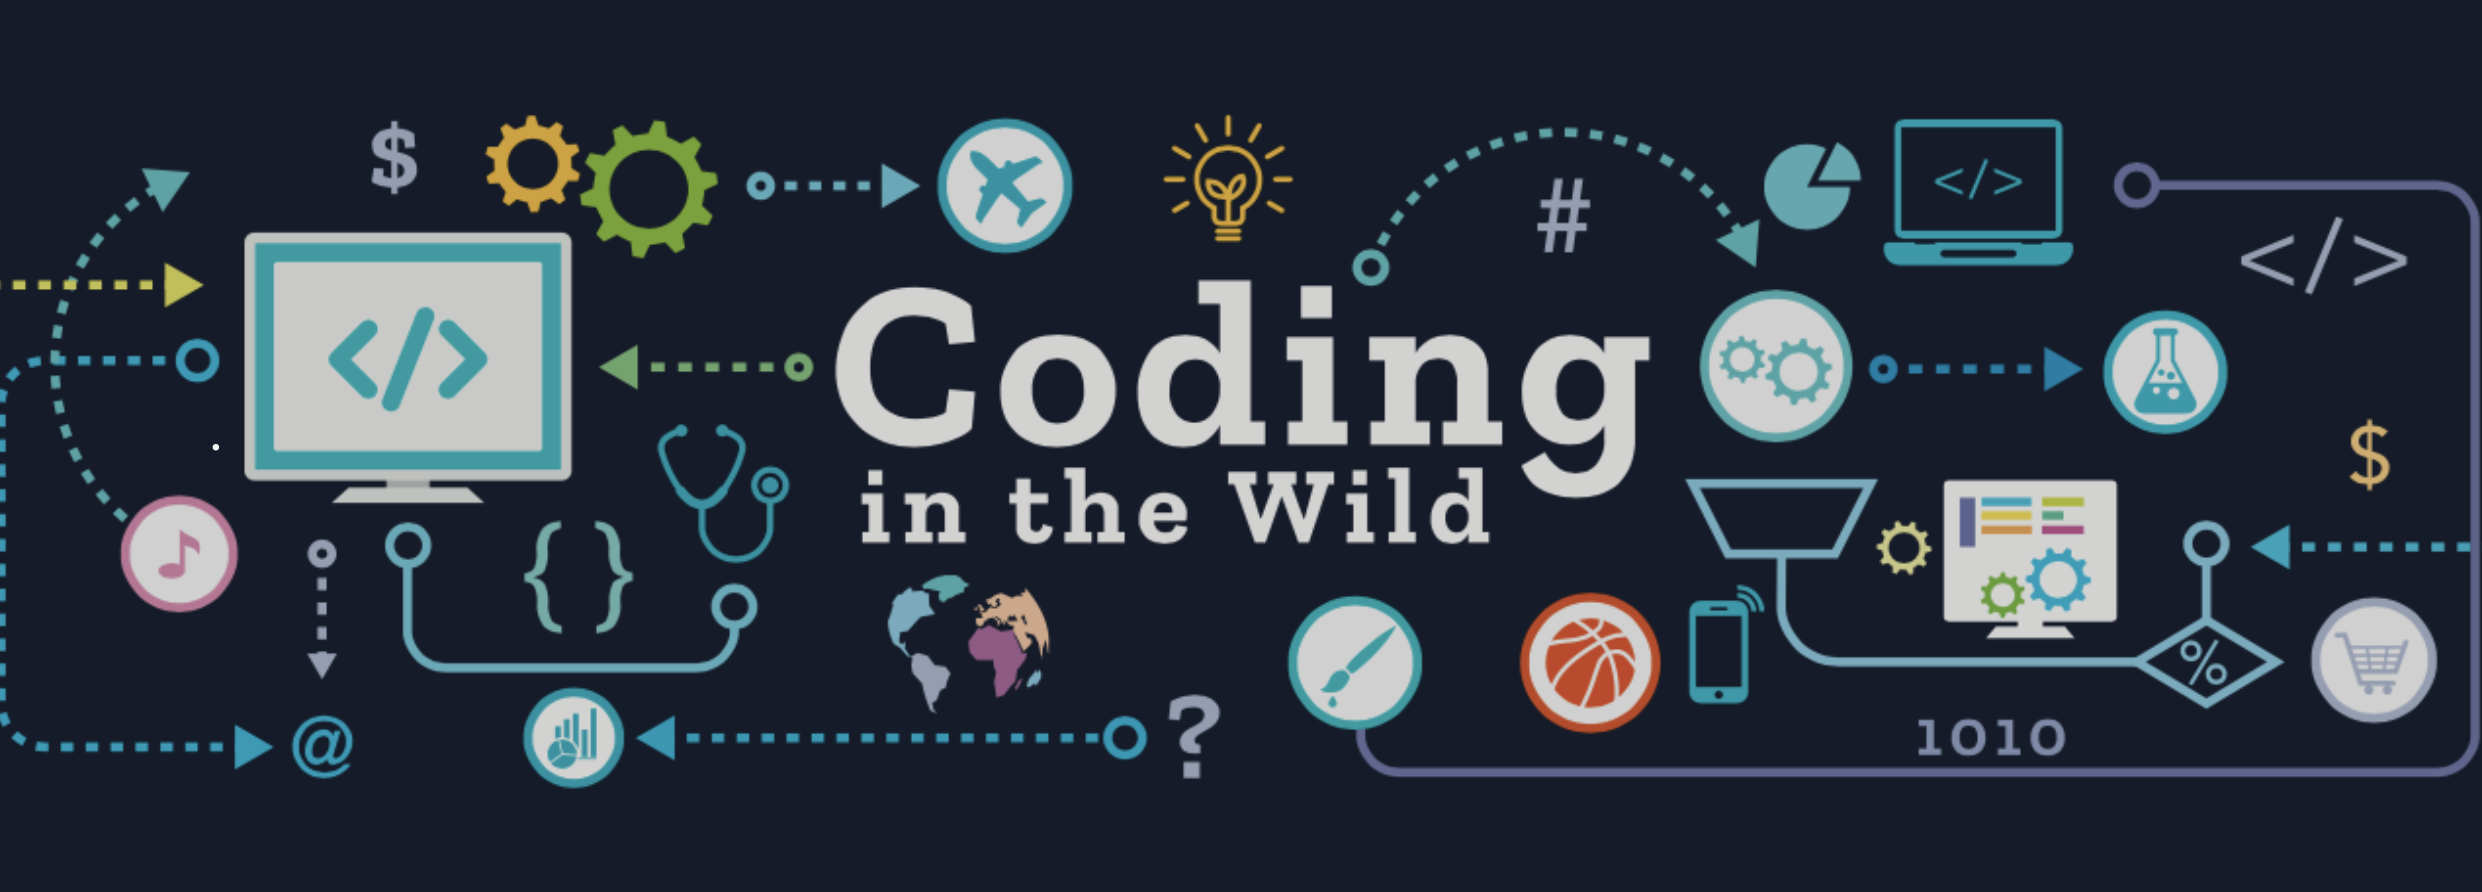 Coding in the Wild Banner